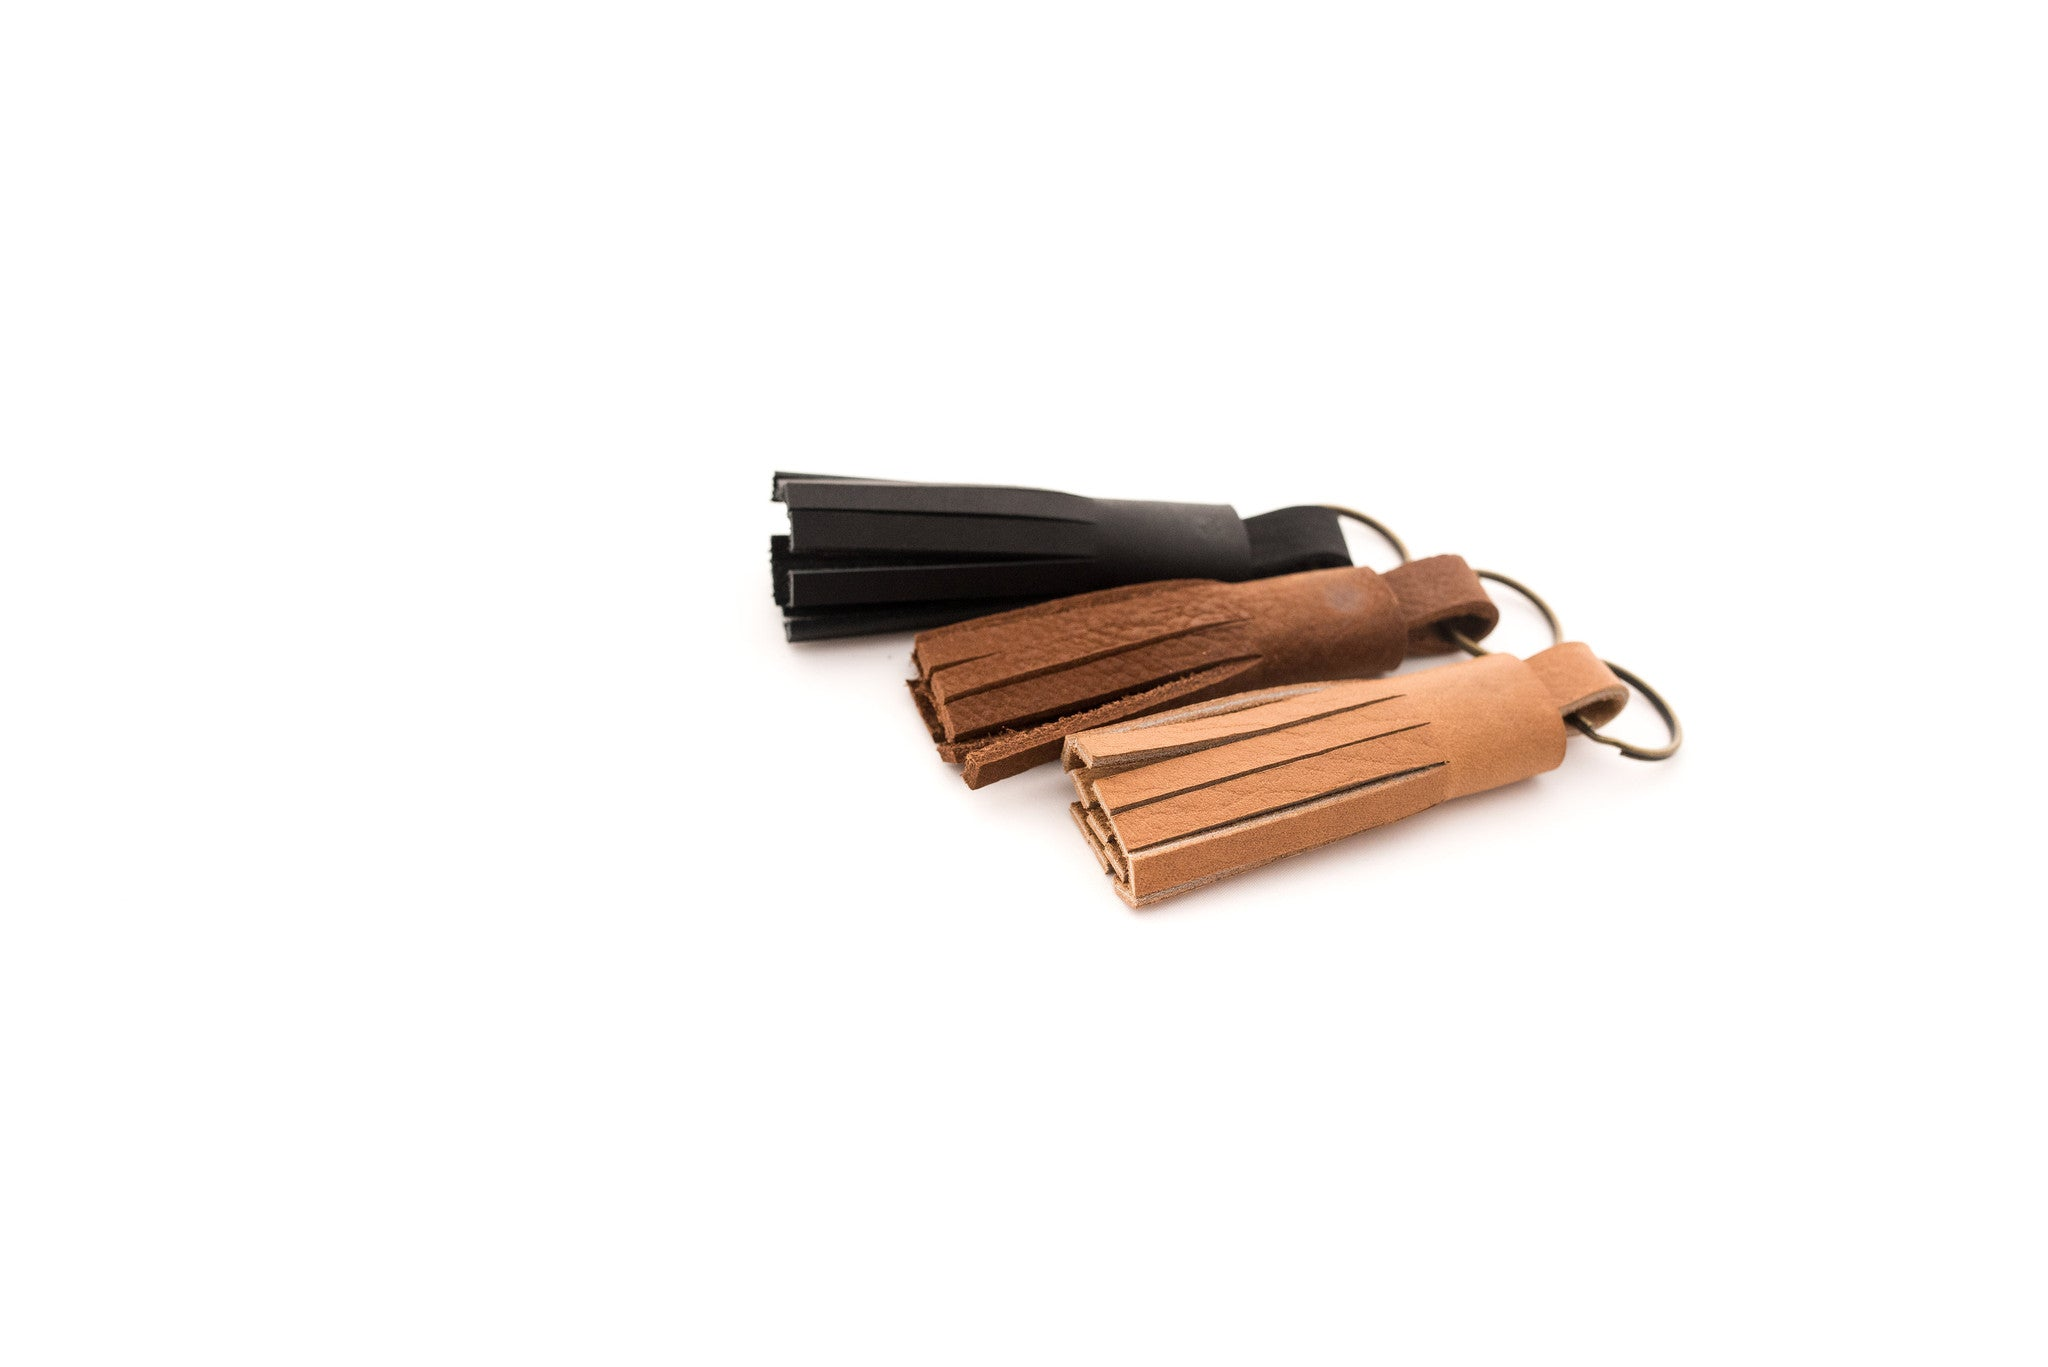 Tassel Key Chain - Small Leather - handcrafted by Market Canvas Leather in Tofino, BC, Canada